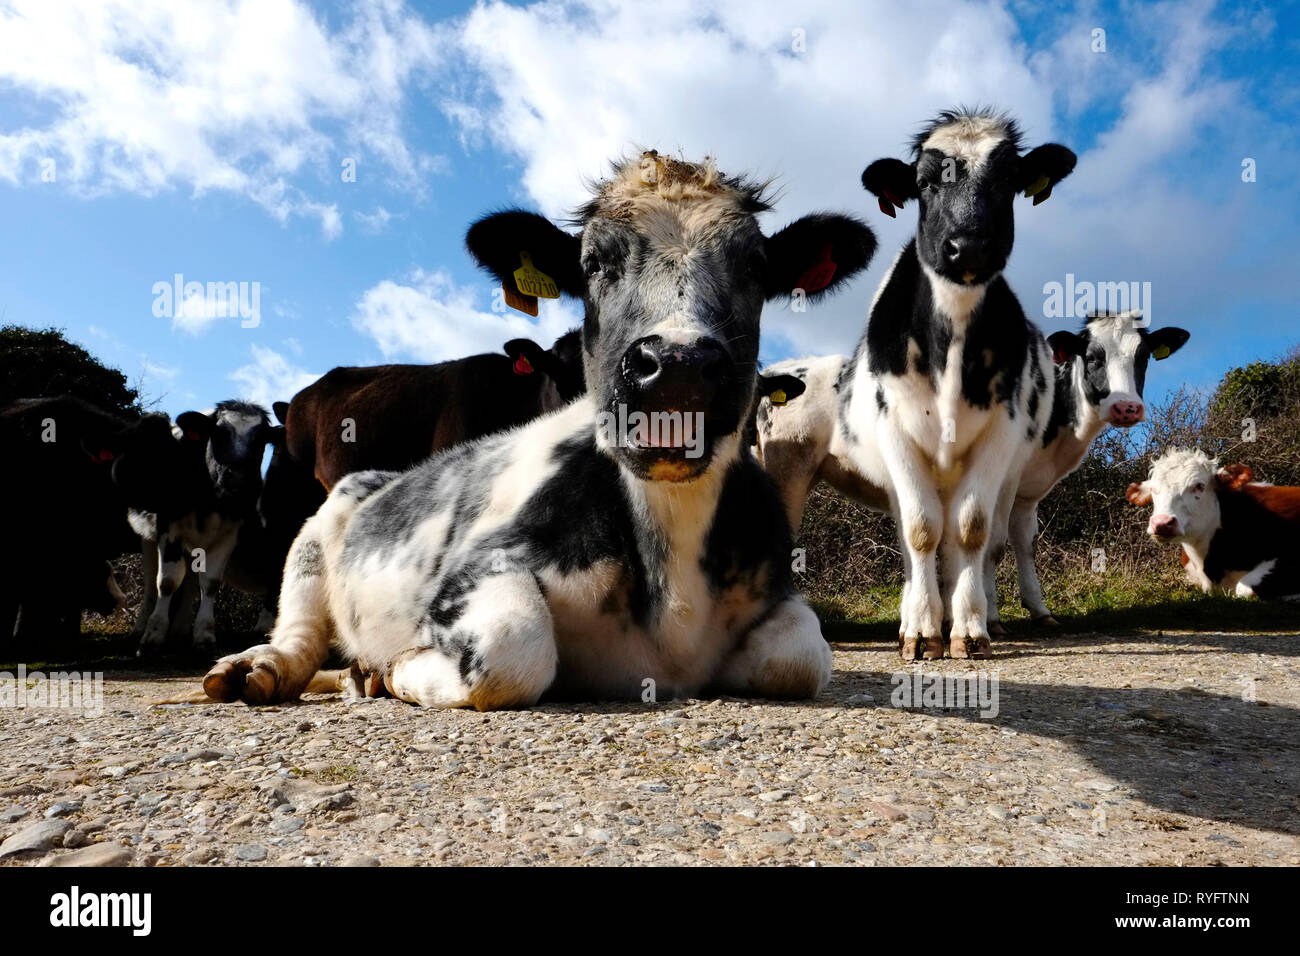 A herd of cows portrait, some ruminating, on top of Bembridge and Culver Downs, Isle of Wight, UK, United Kingdom. - Stock Image